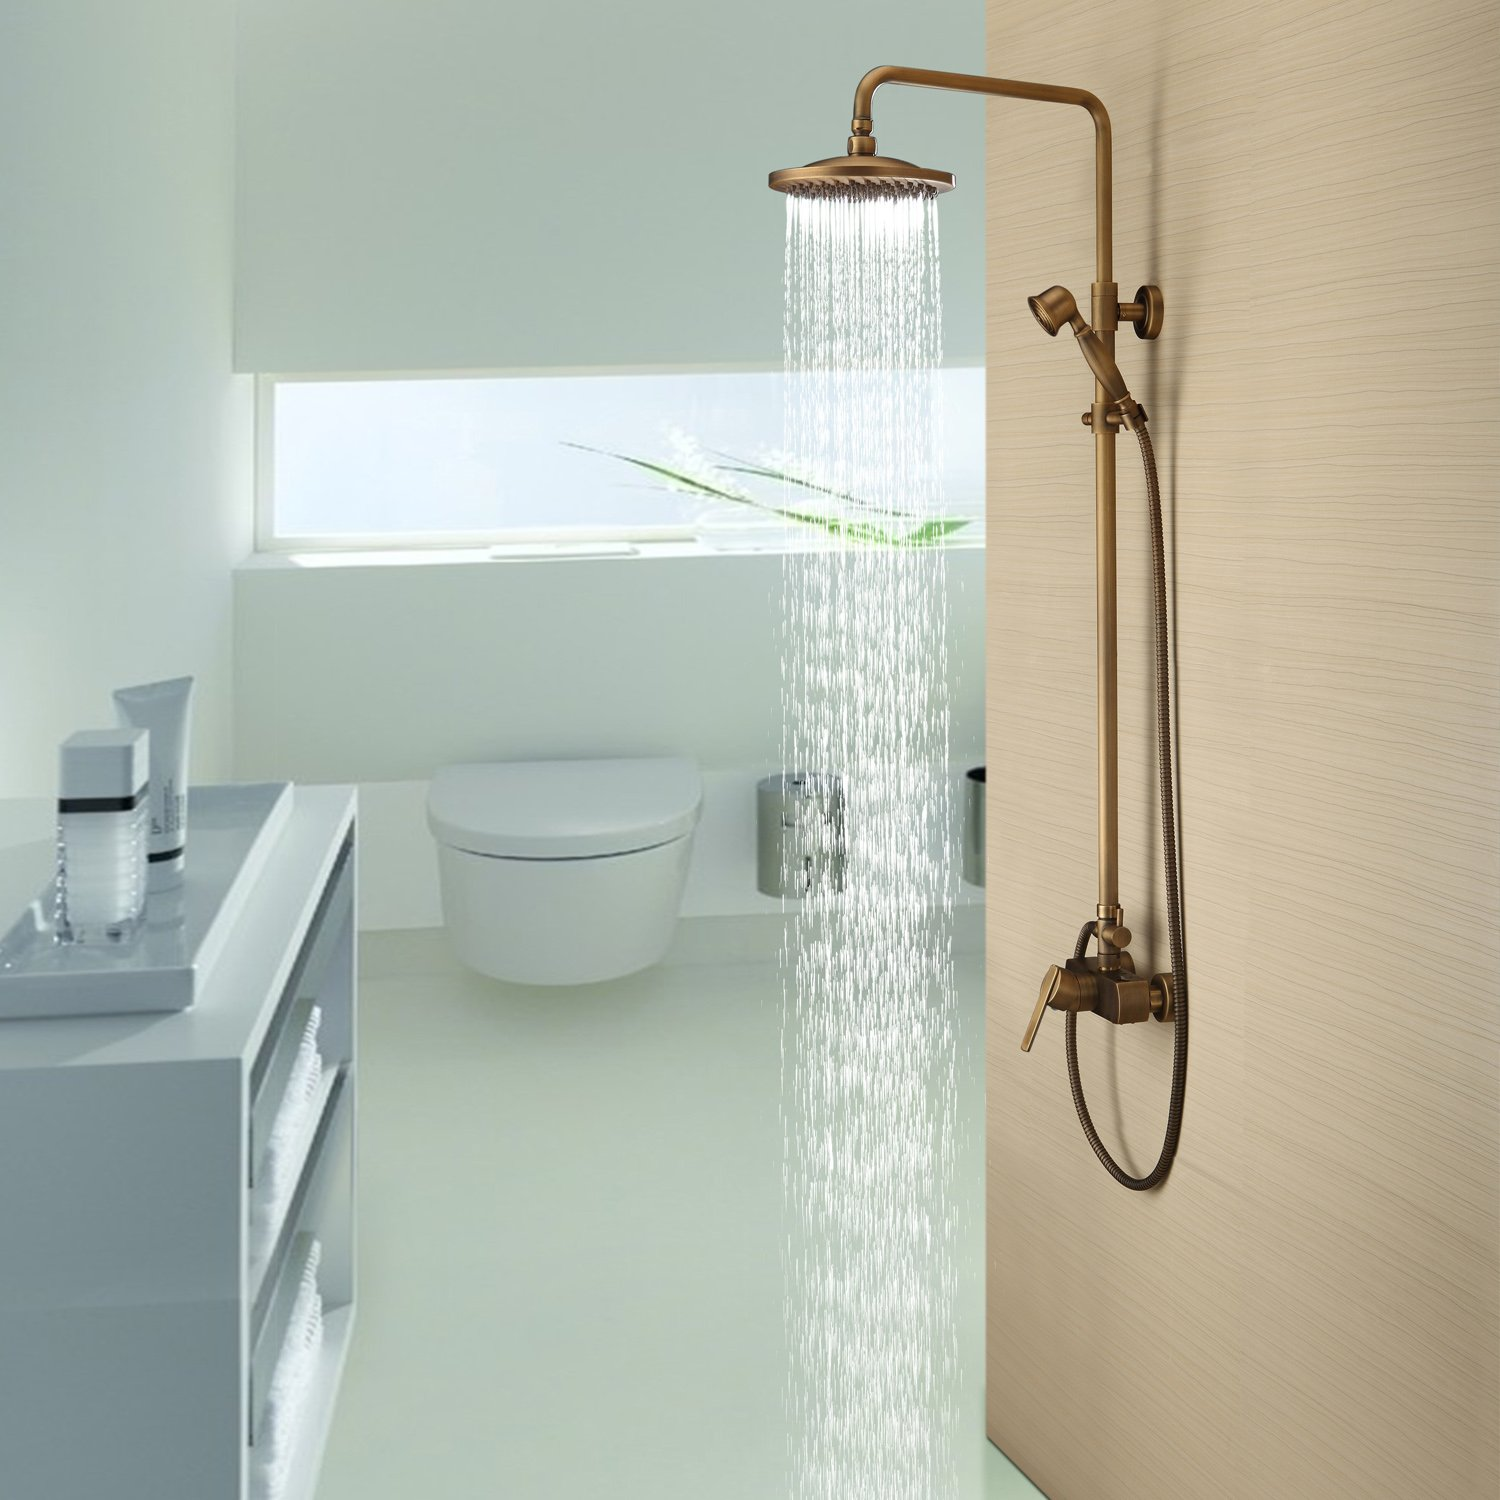 Lightinthebox Antique Solid Brass Bathroom Fixtures with 8 Inch Shower Head Handheld Shower Bronze Shower Holder and Arms Rainfall Shower Head Lavatory Roman Tub Faucets Plumbing Fixtures